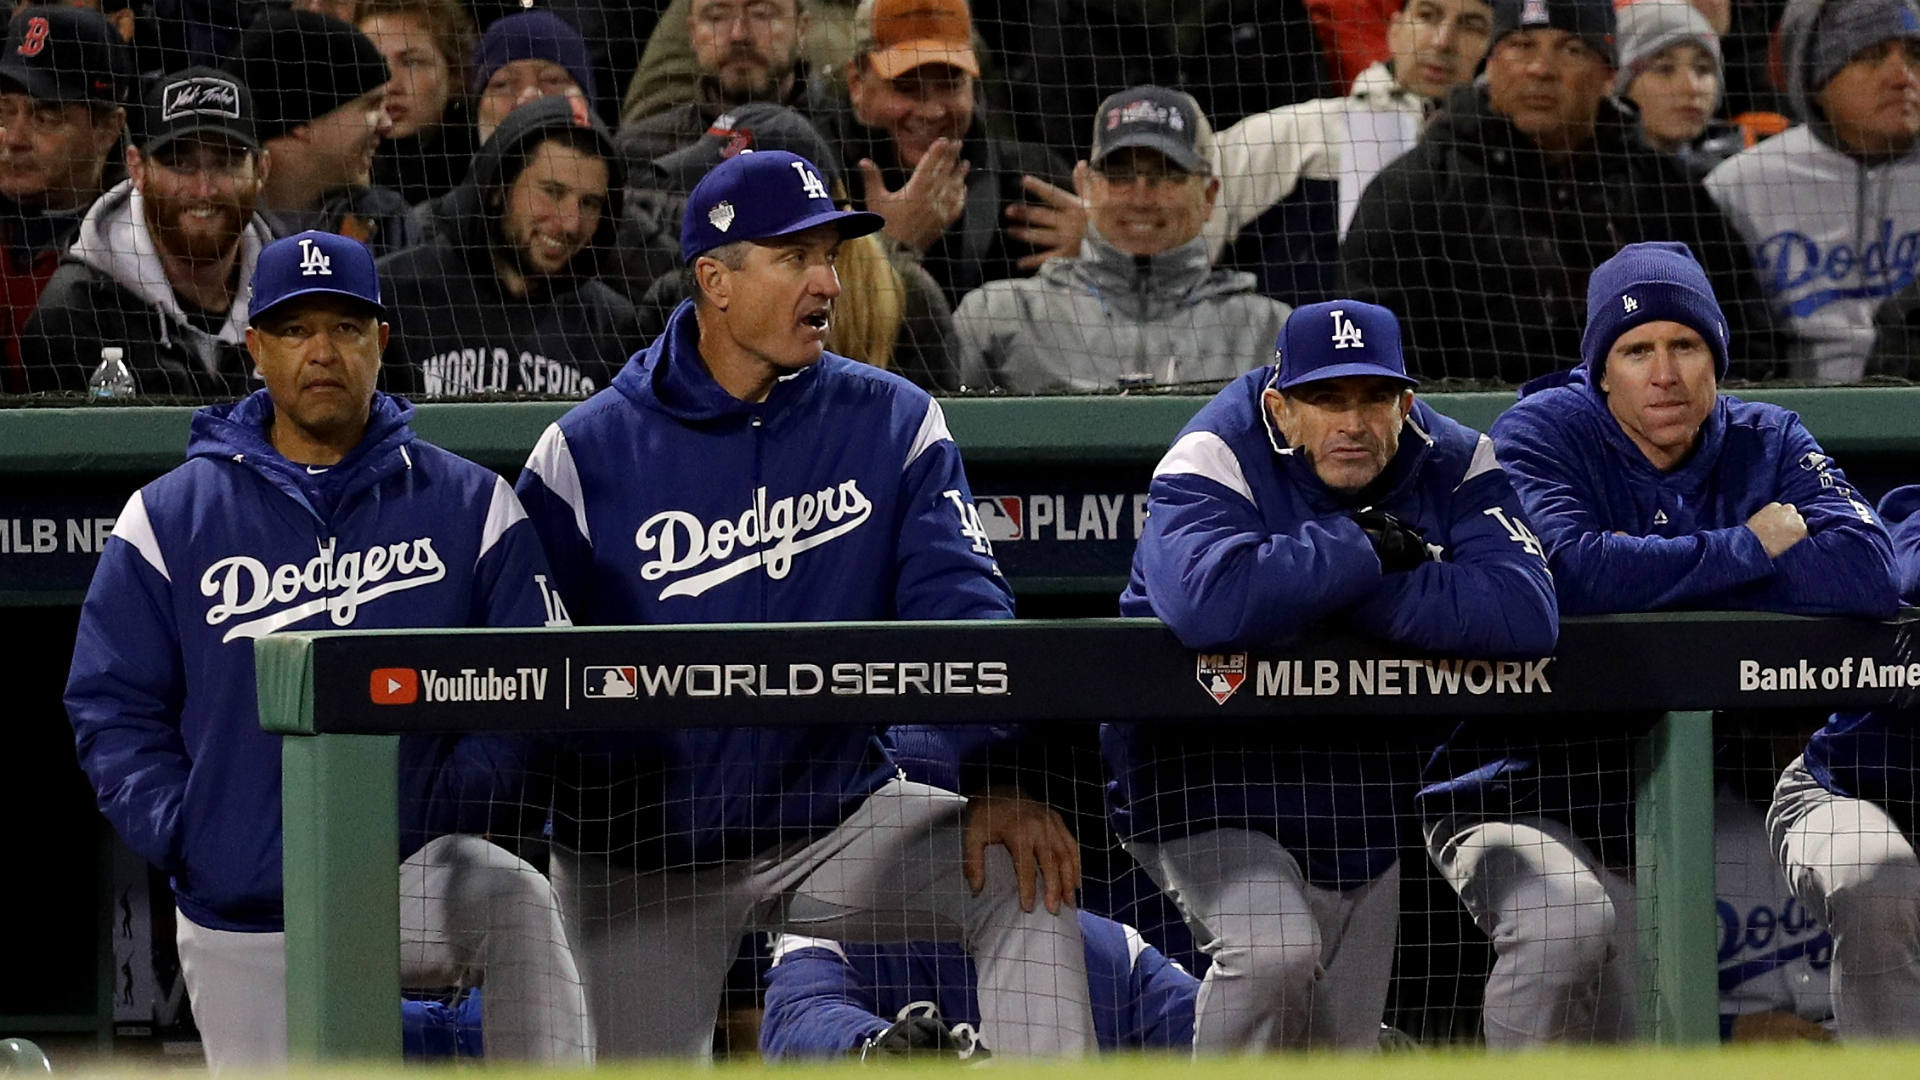 Dodgers collapse, Boston on brink of title after 9-6 win